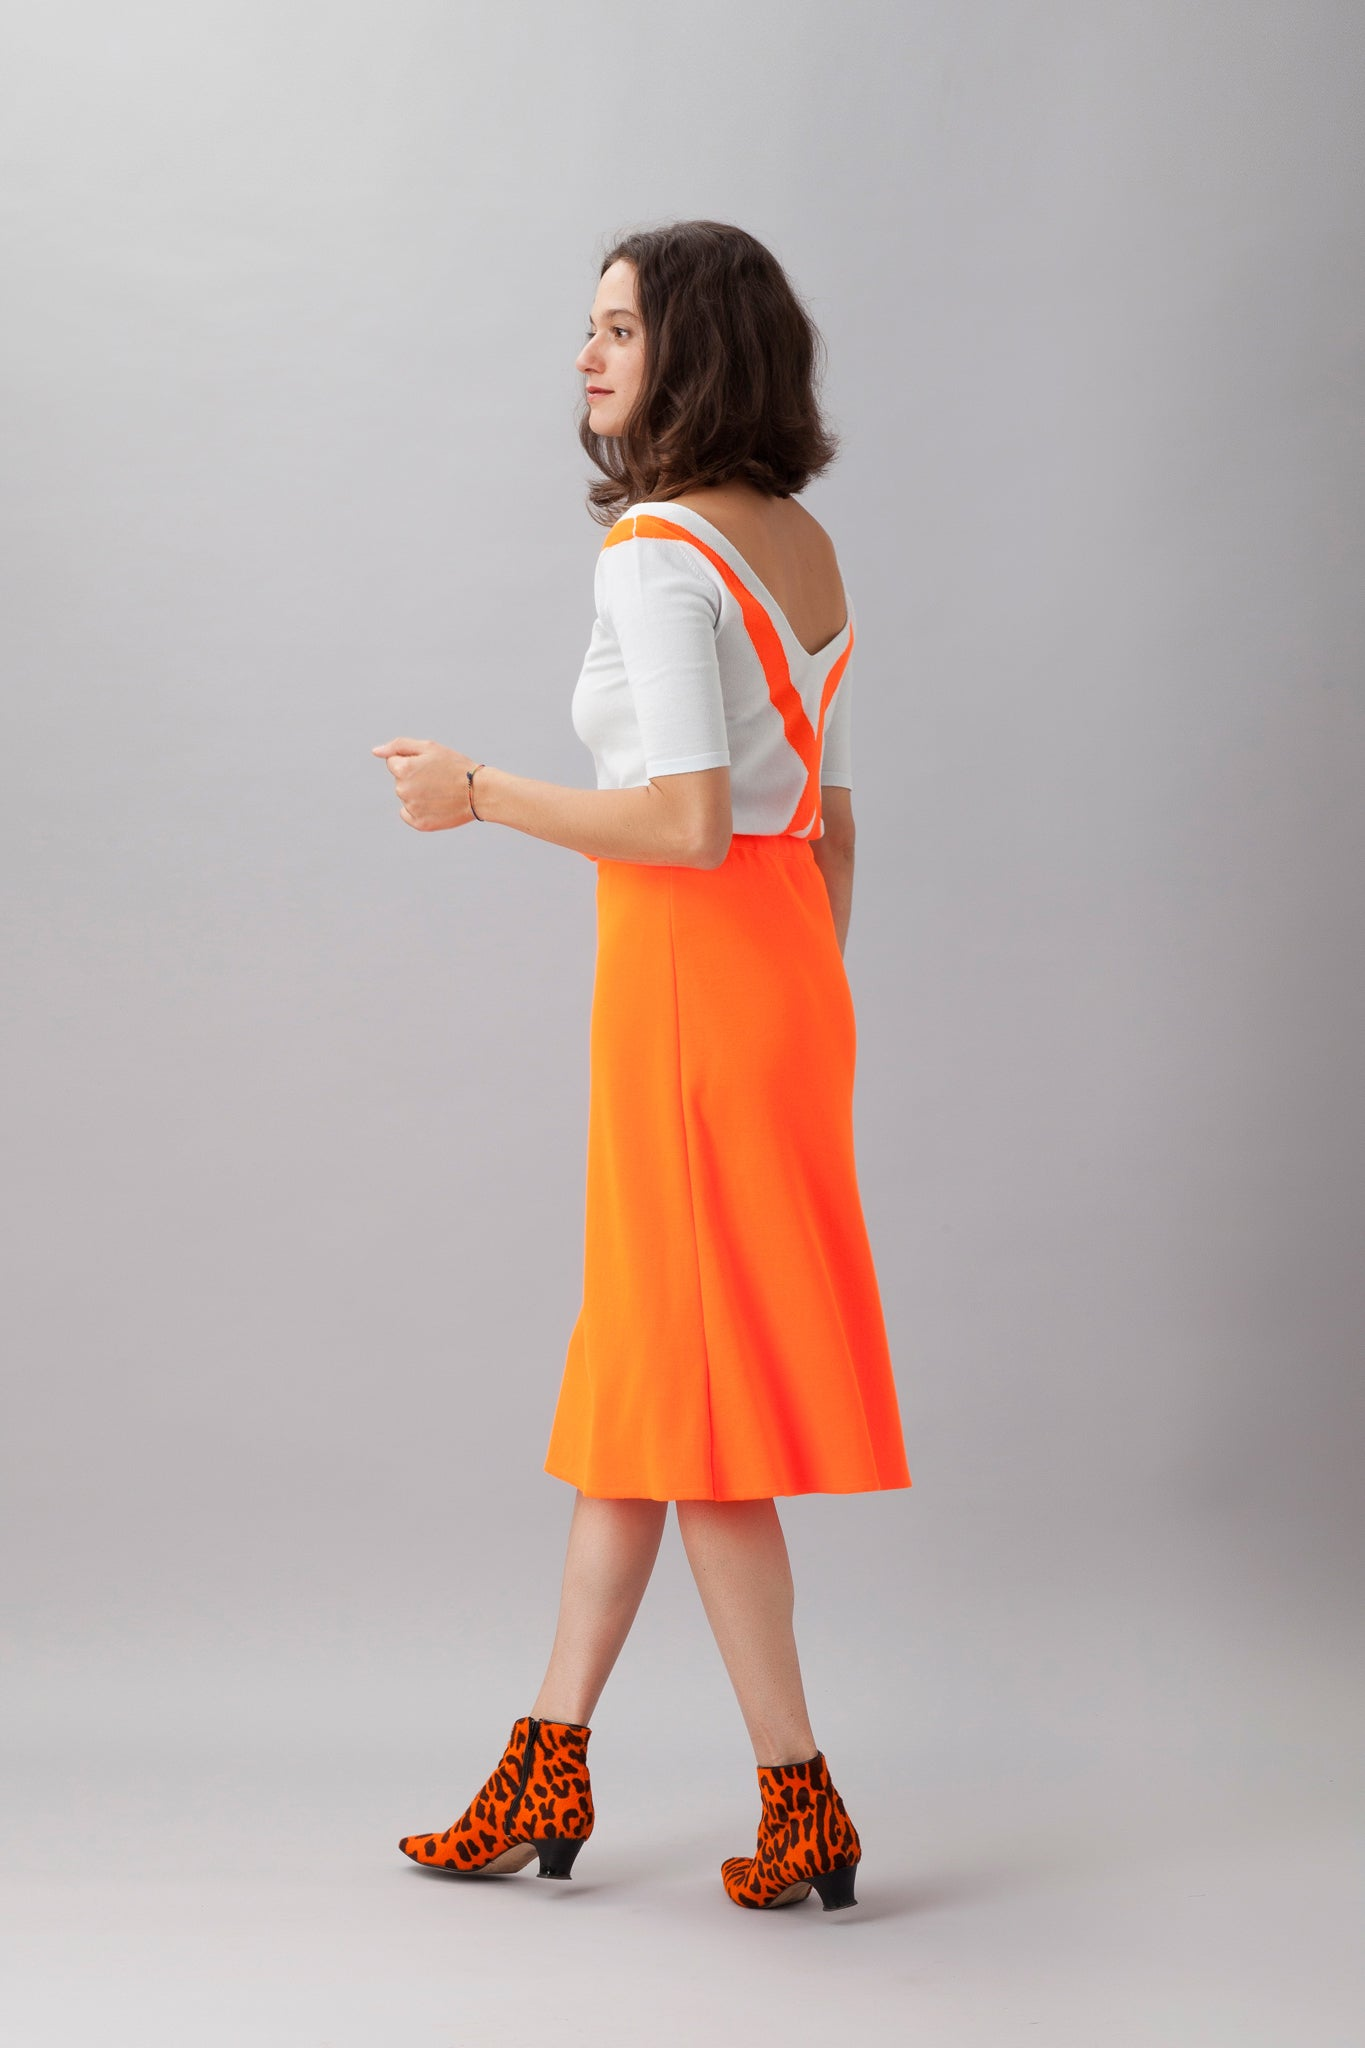 Sartoria Vico + Wait and See<br>Top glow - Orange